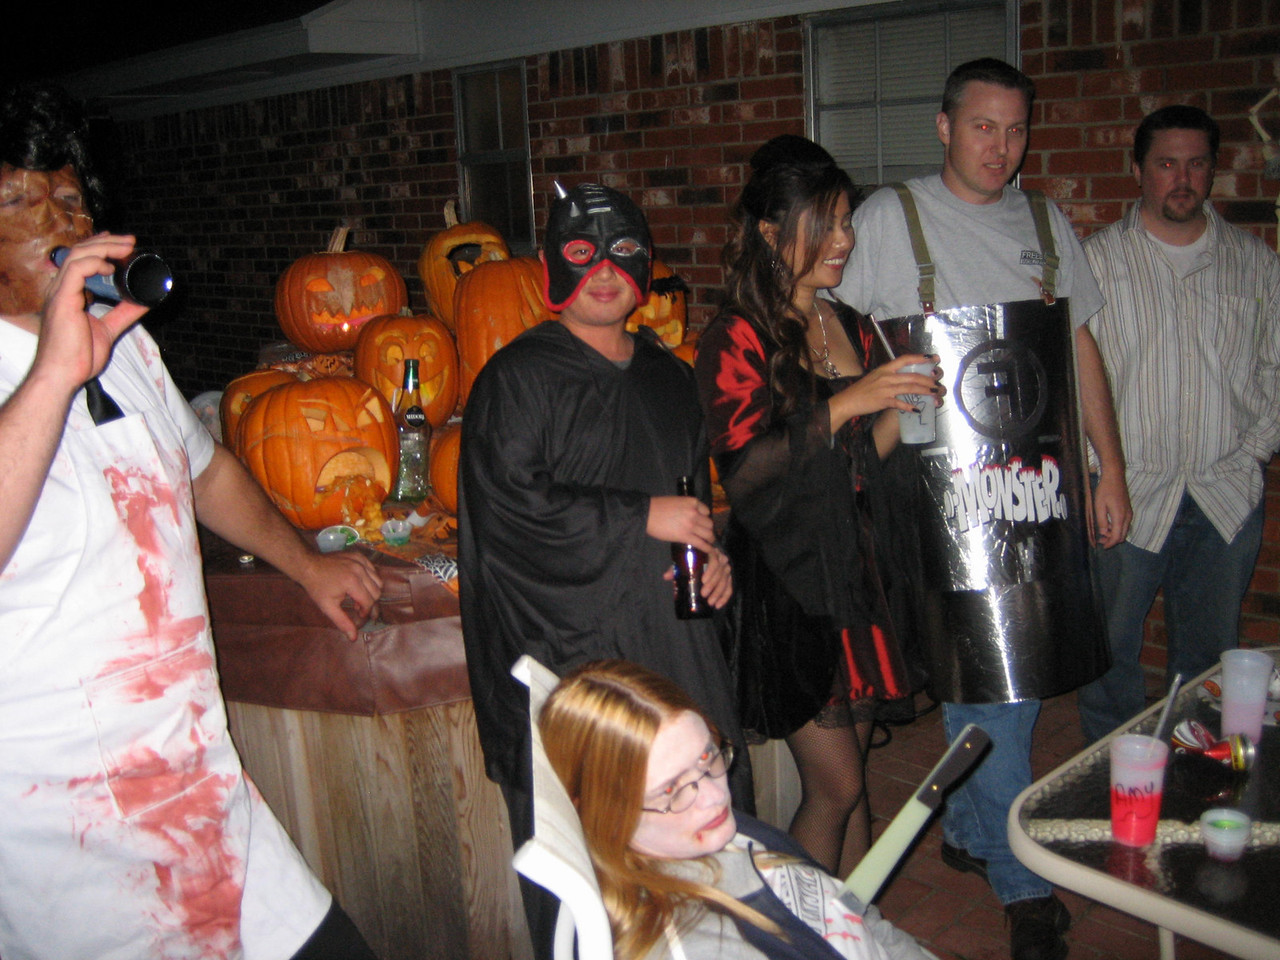 Leatherface, Masked asian (Dean) and Colleen, Duck (Freebirds Monster), and Jeff